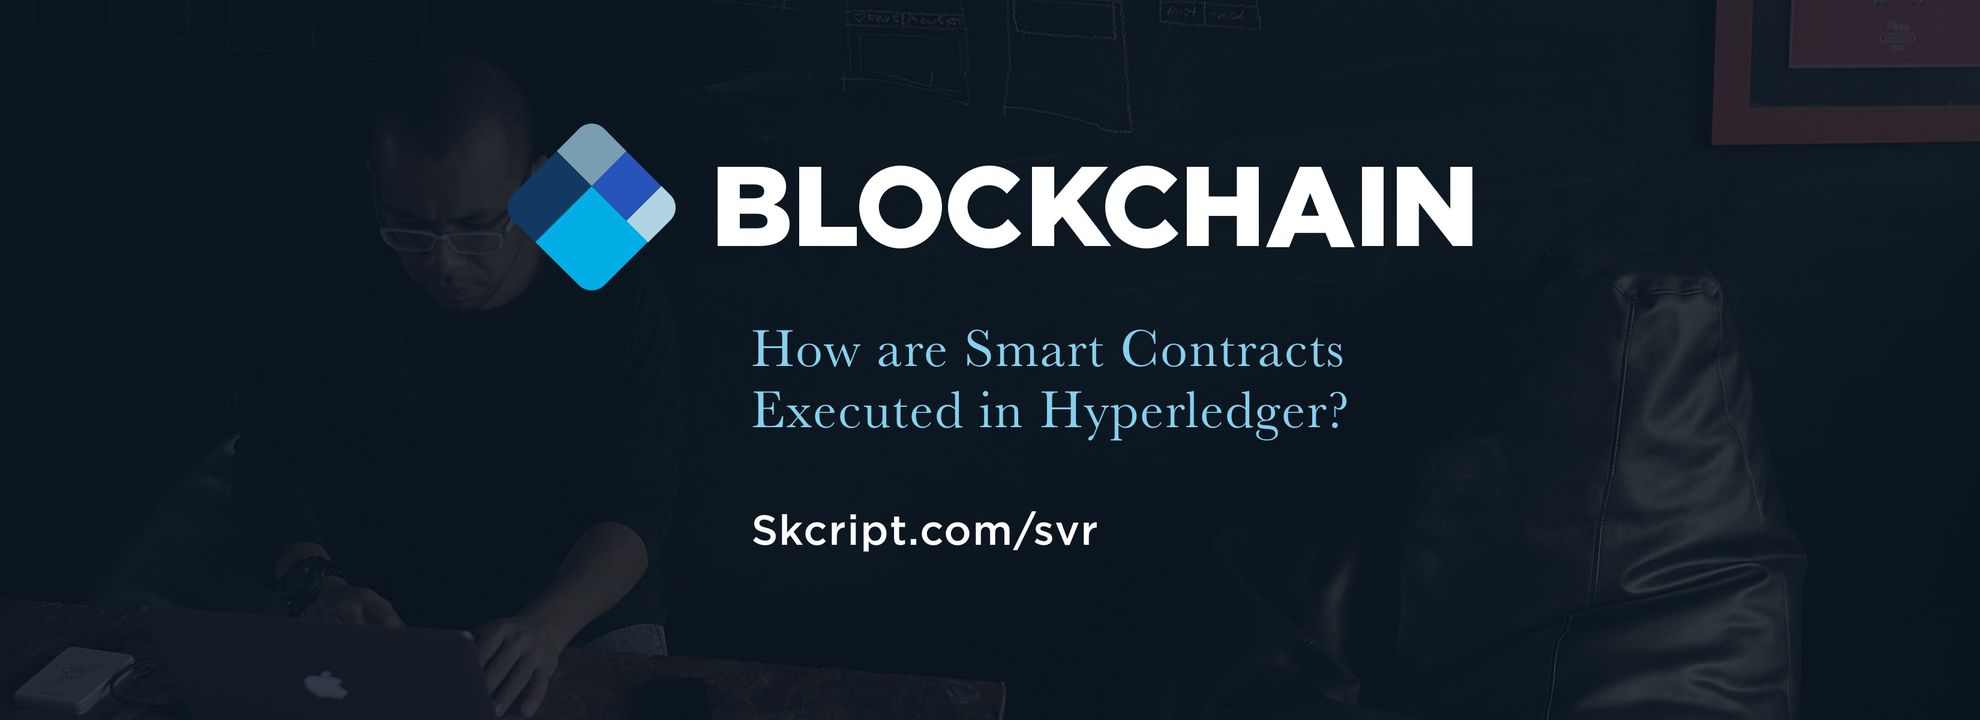 How are Smart Contracts Executed in Hyperledger?